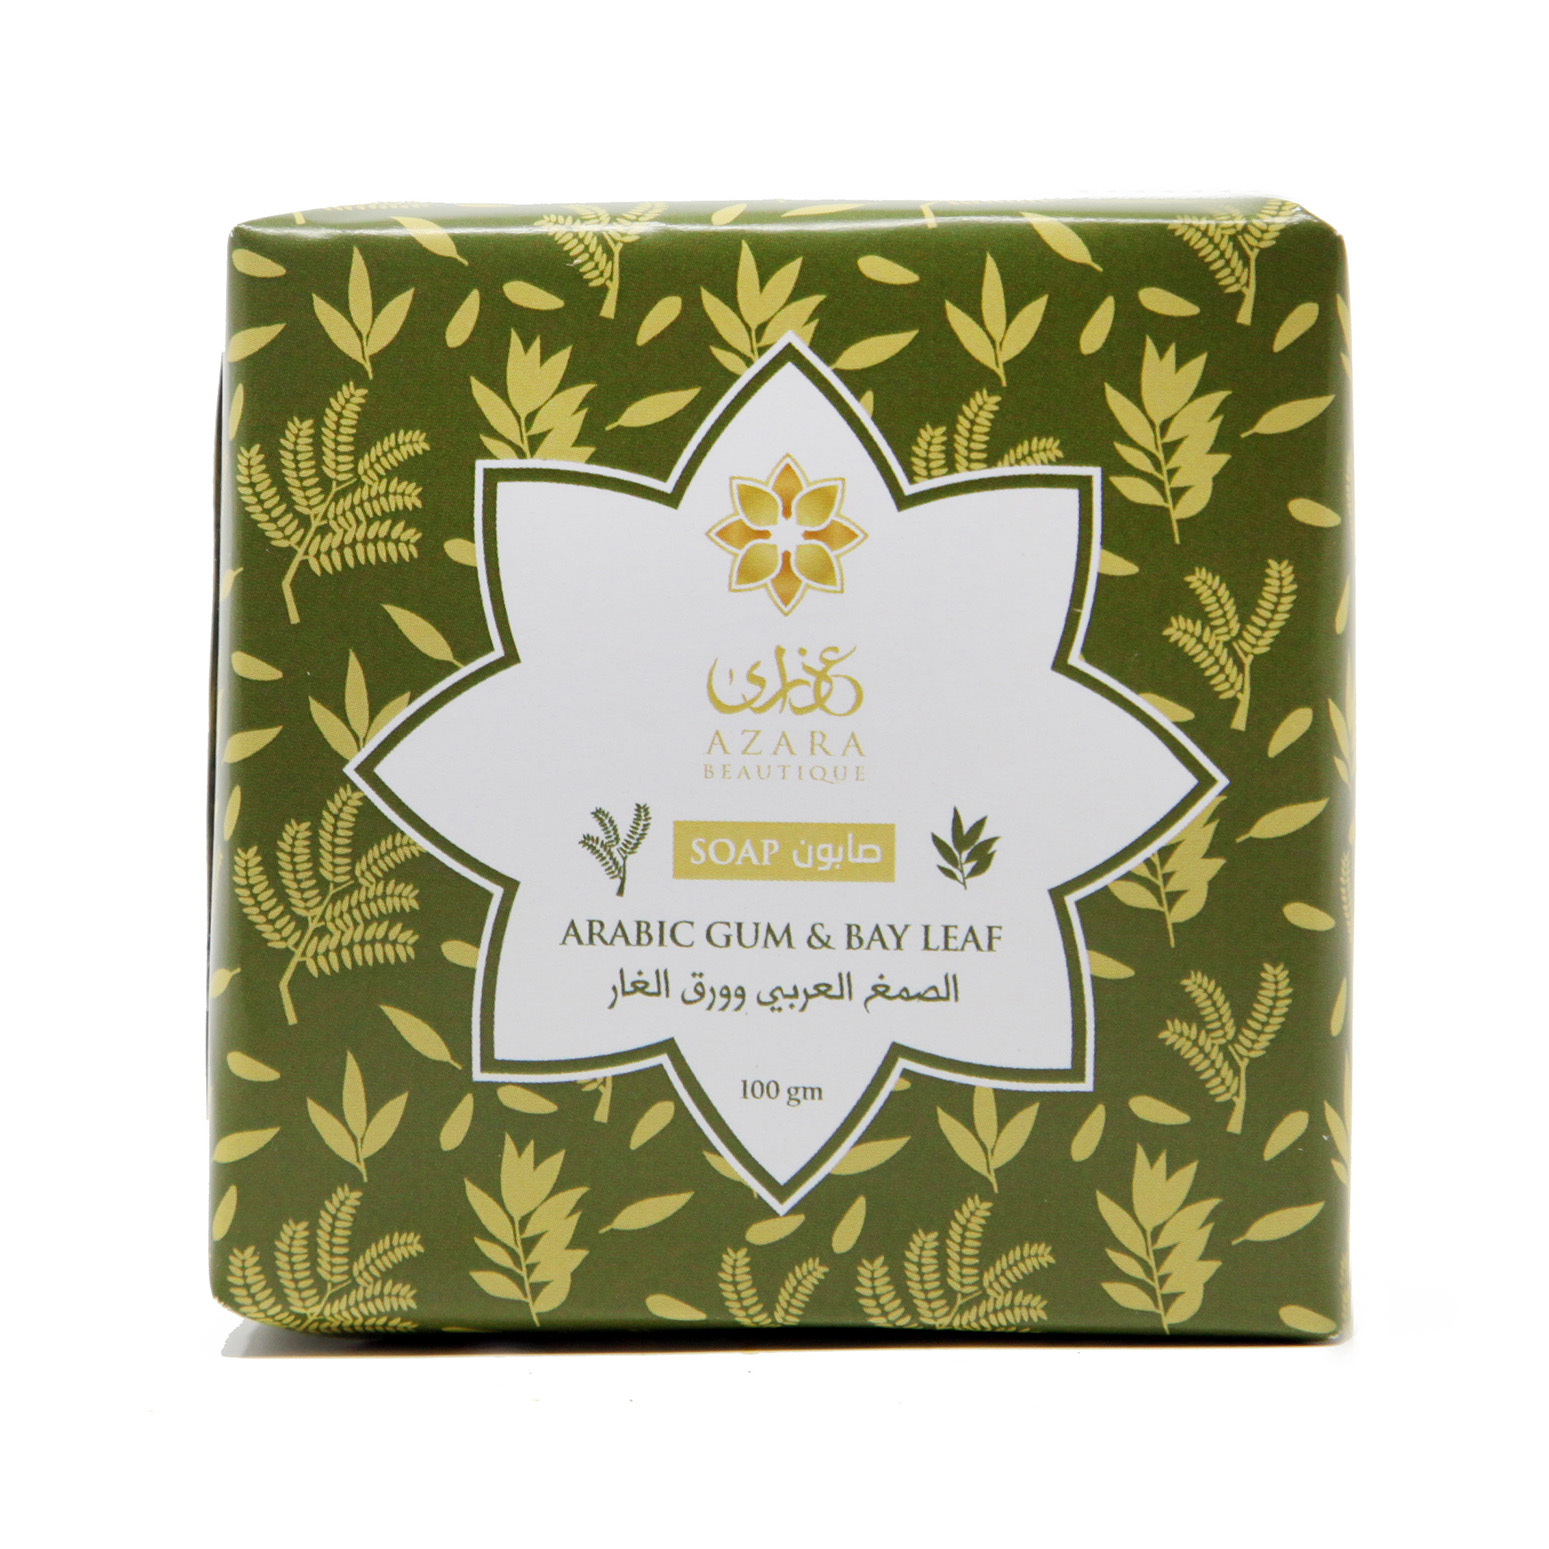 Azara Beautique's Arabic Gum & Bay Leaf Soap can be used for face, body, and hair. This particular formulation lightens scars and strengthens hair.